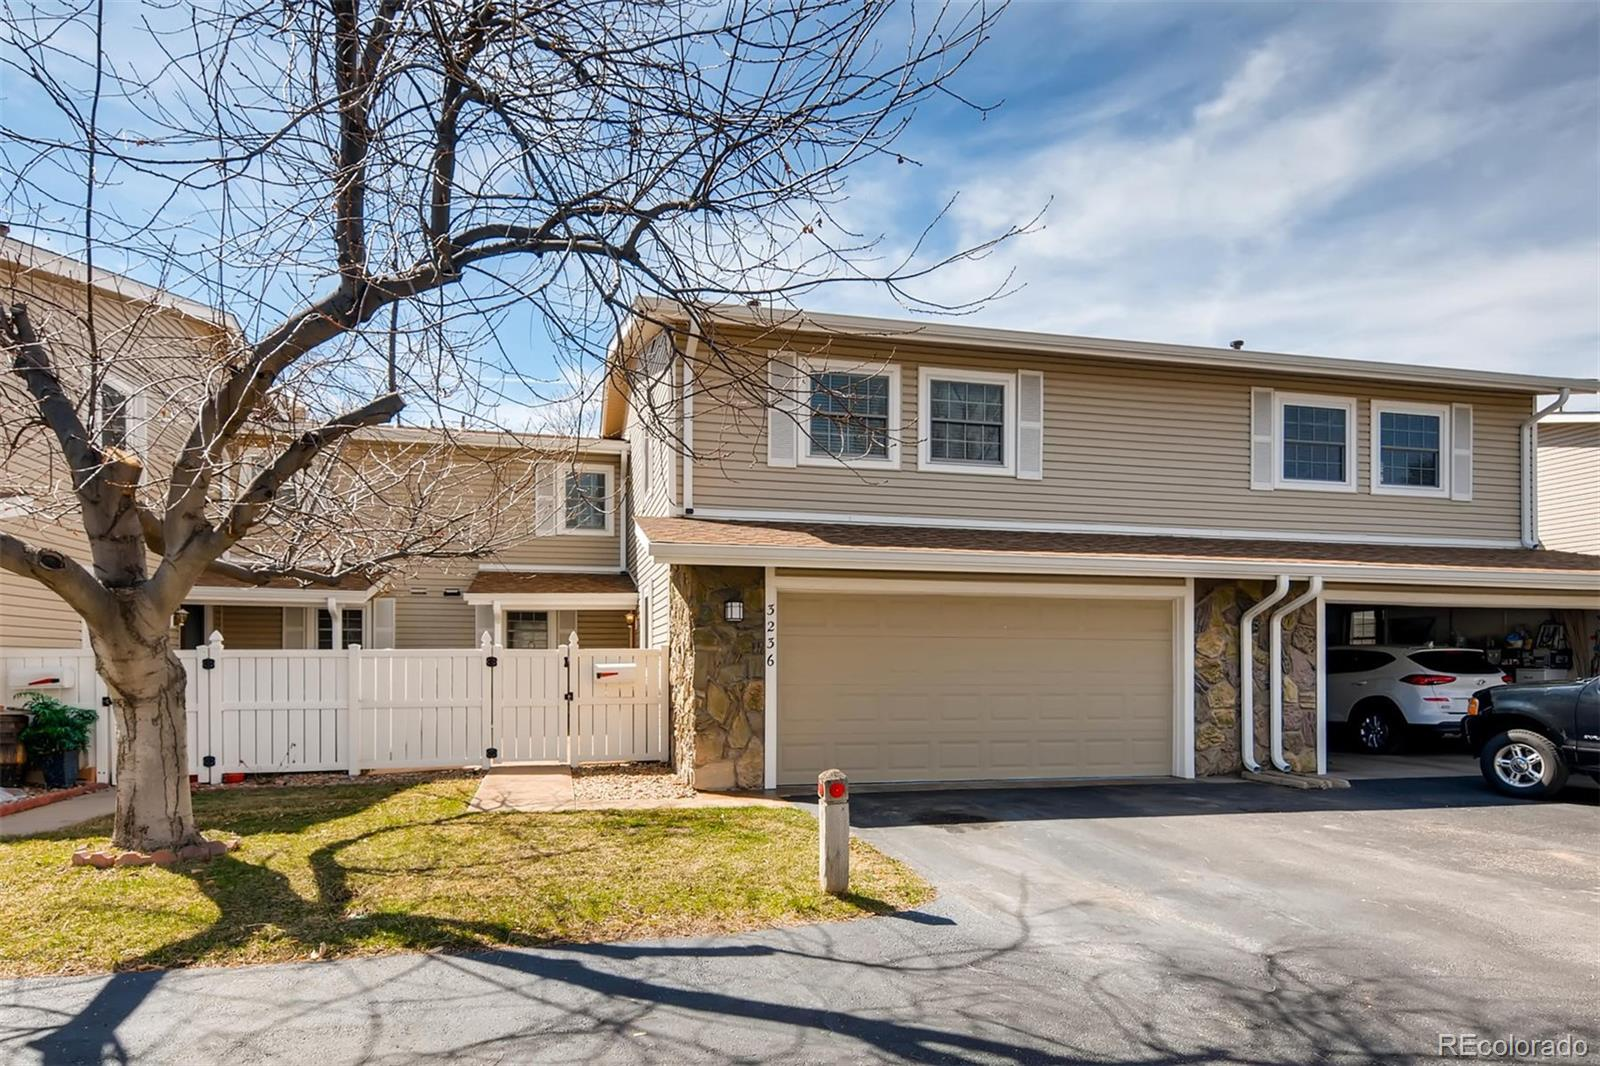 MLS# 3825448 - 2 - 3236 S Heather Gardens Way, Aurora, CO 80014